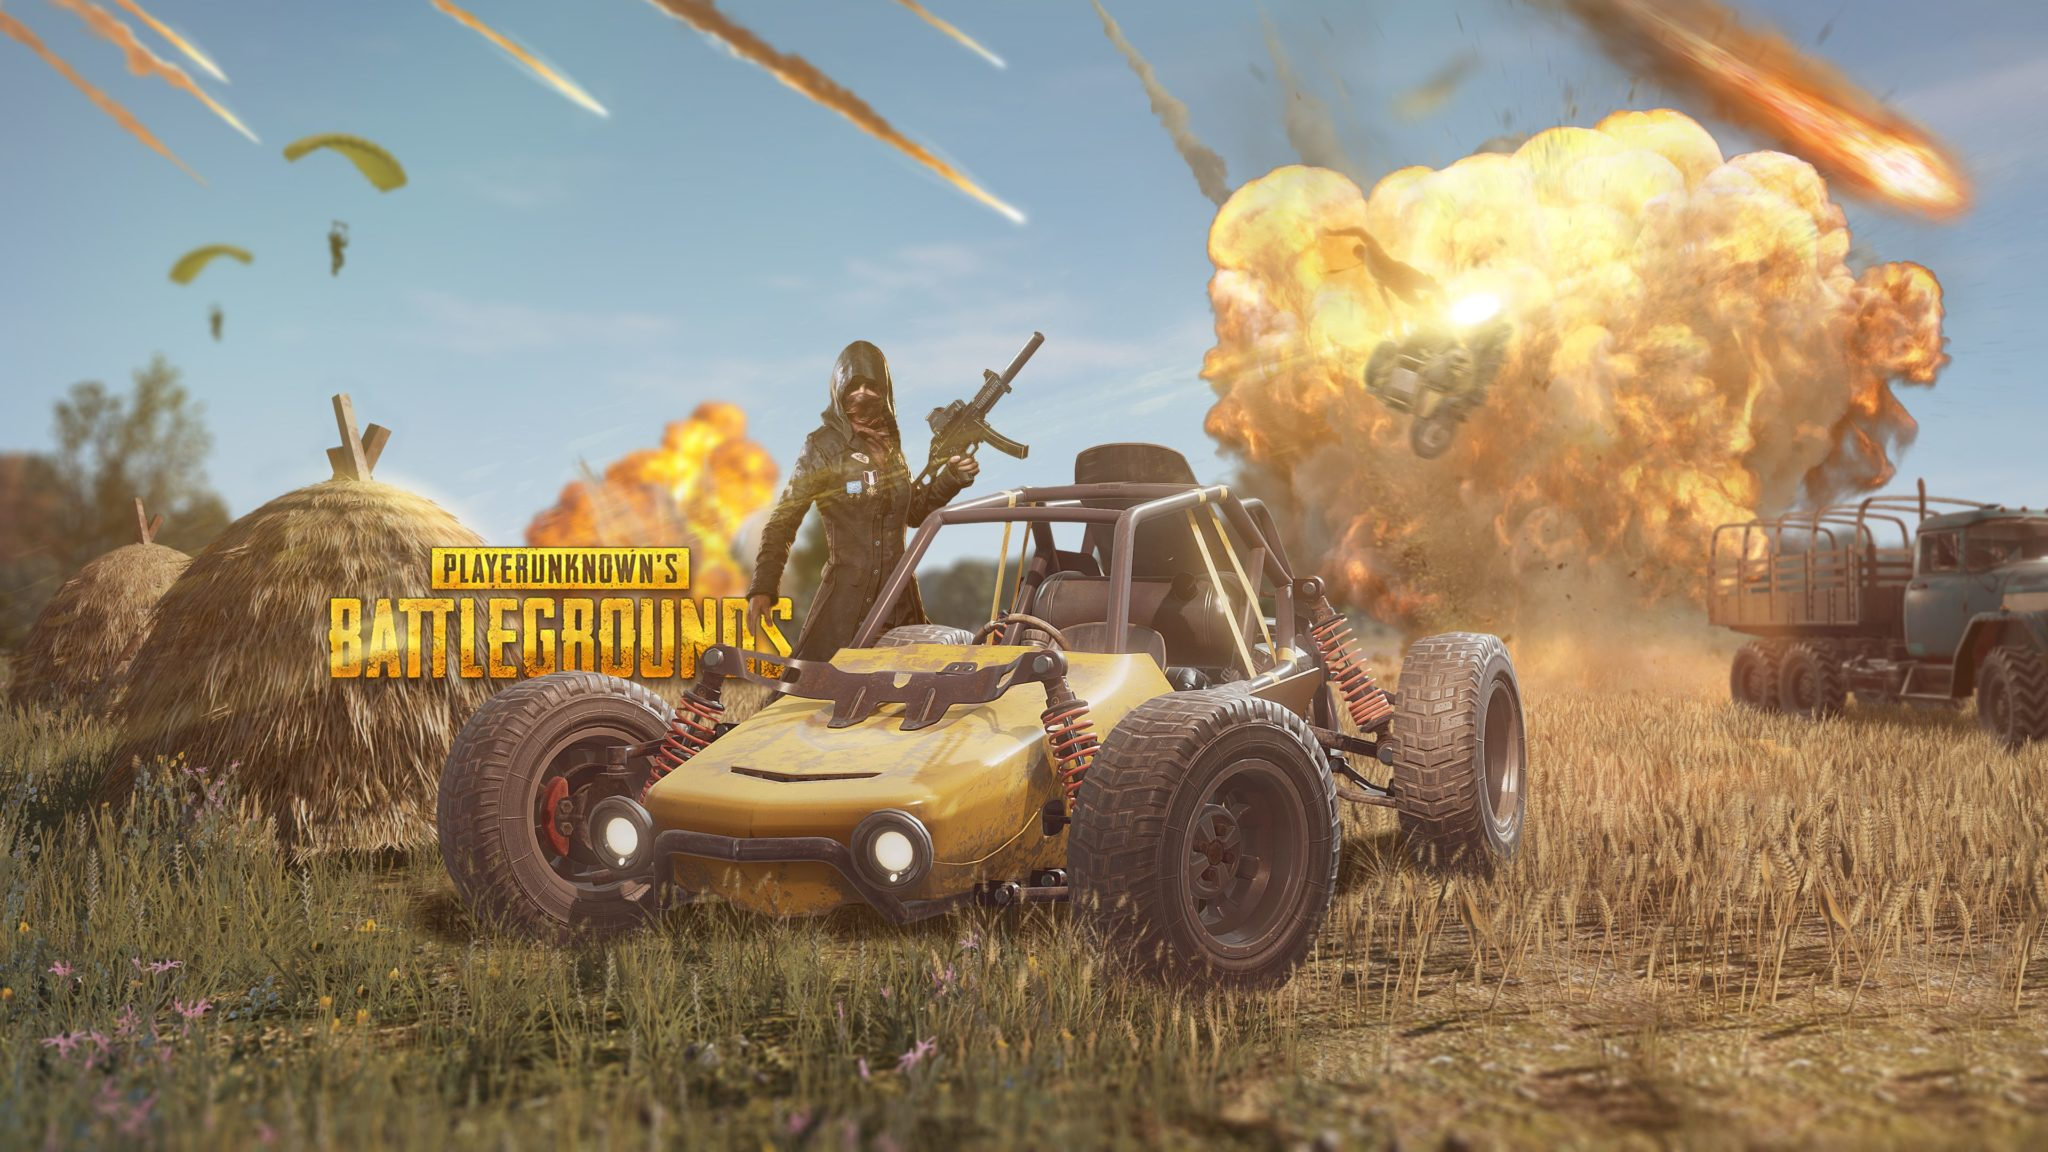 PUBG Mobile ton of replay value available